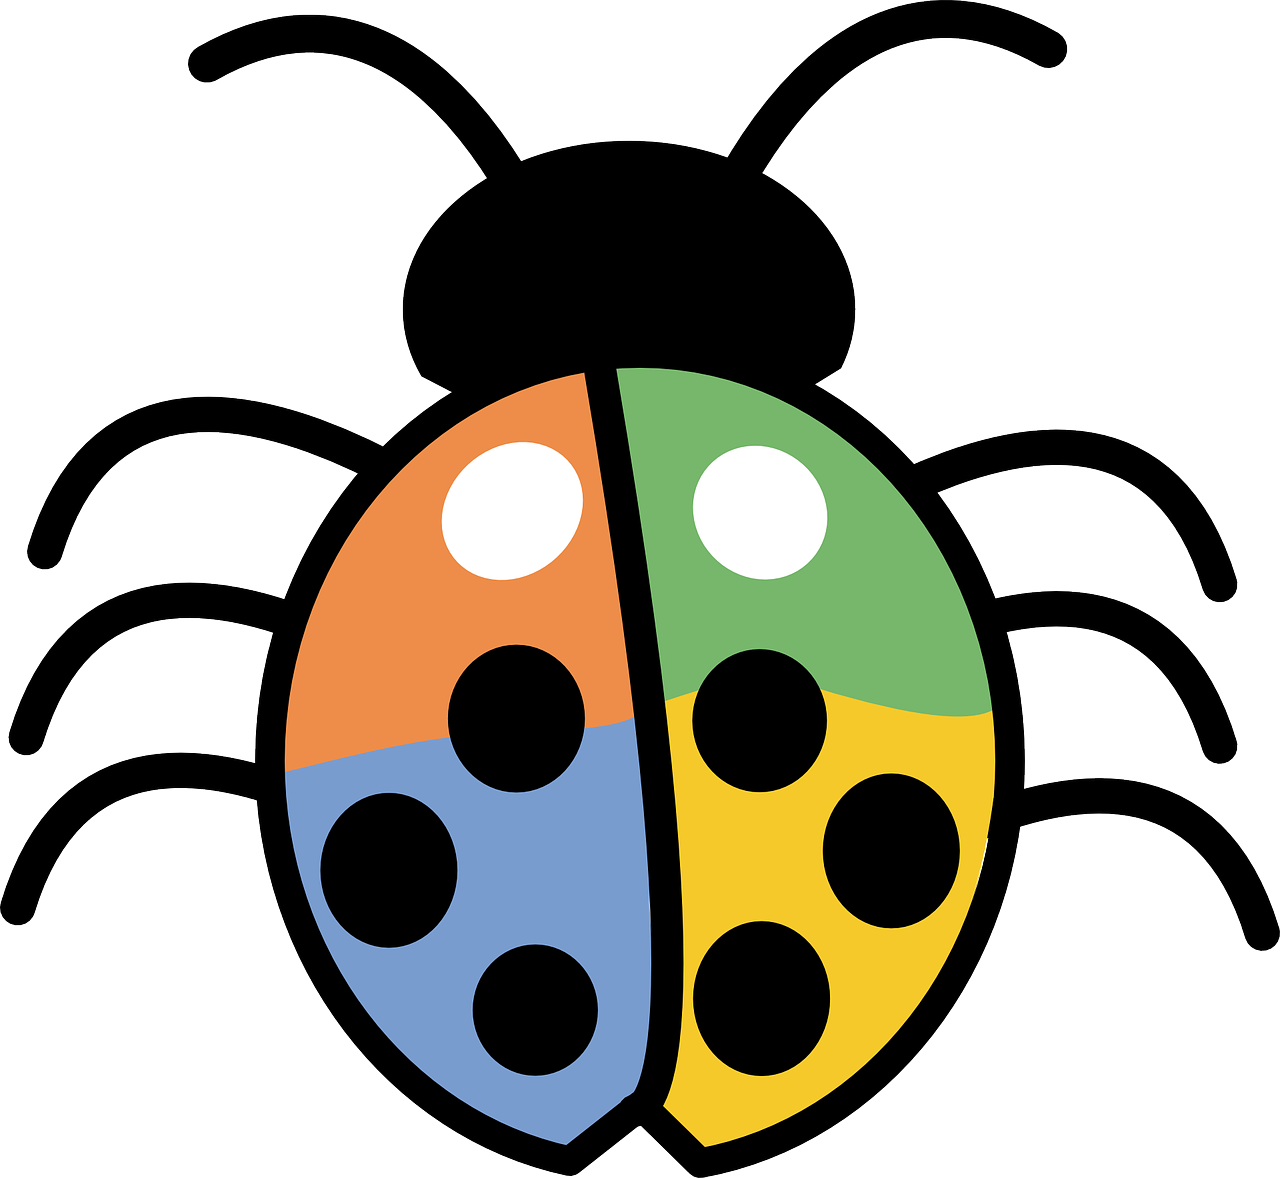 Ladybugs clipart lifecycle. Bug tracking system news